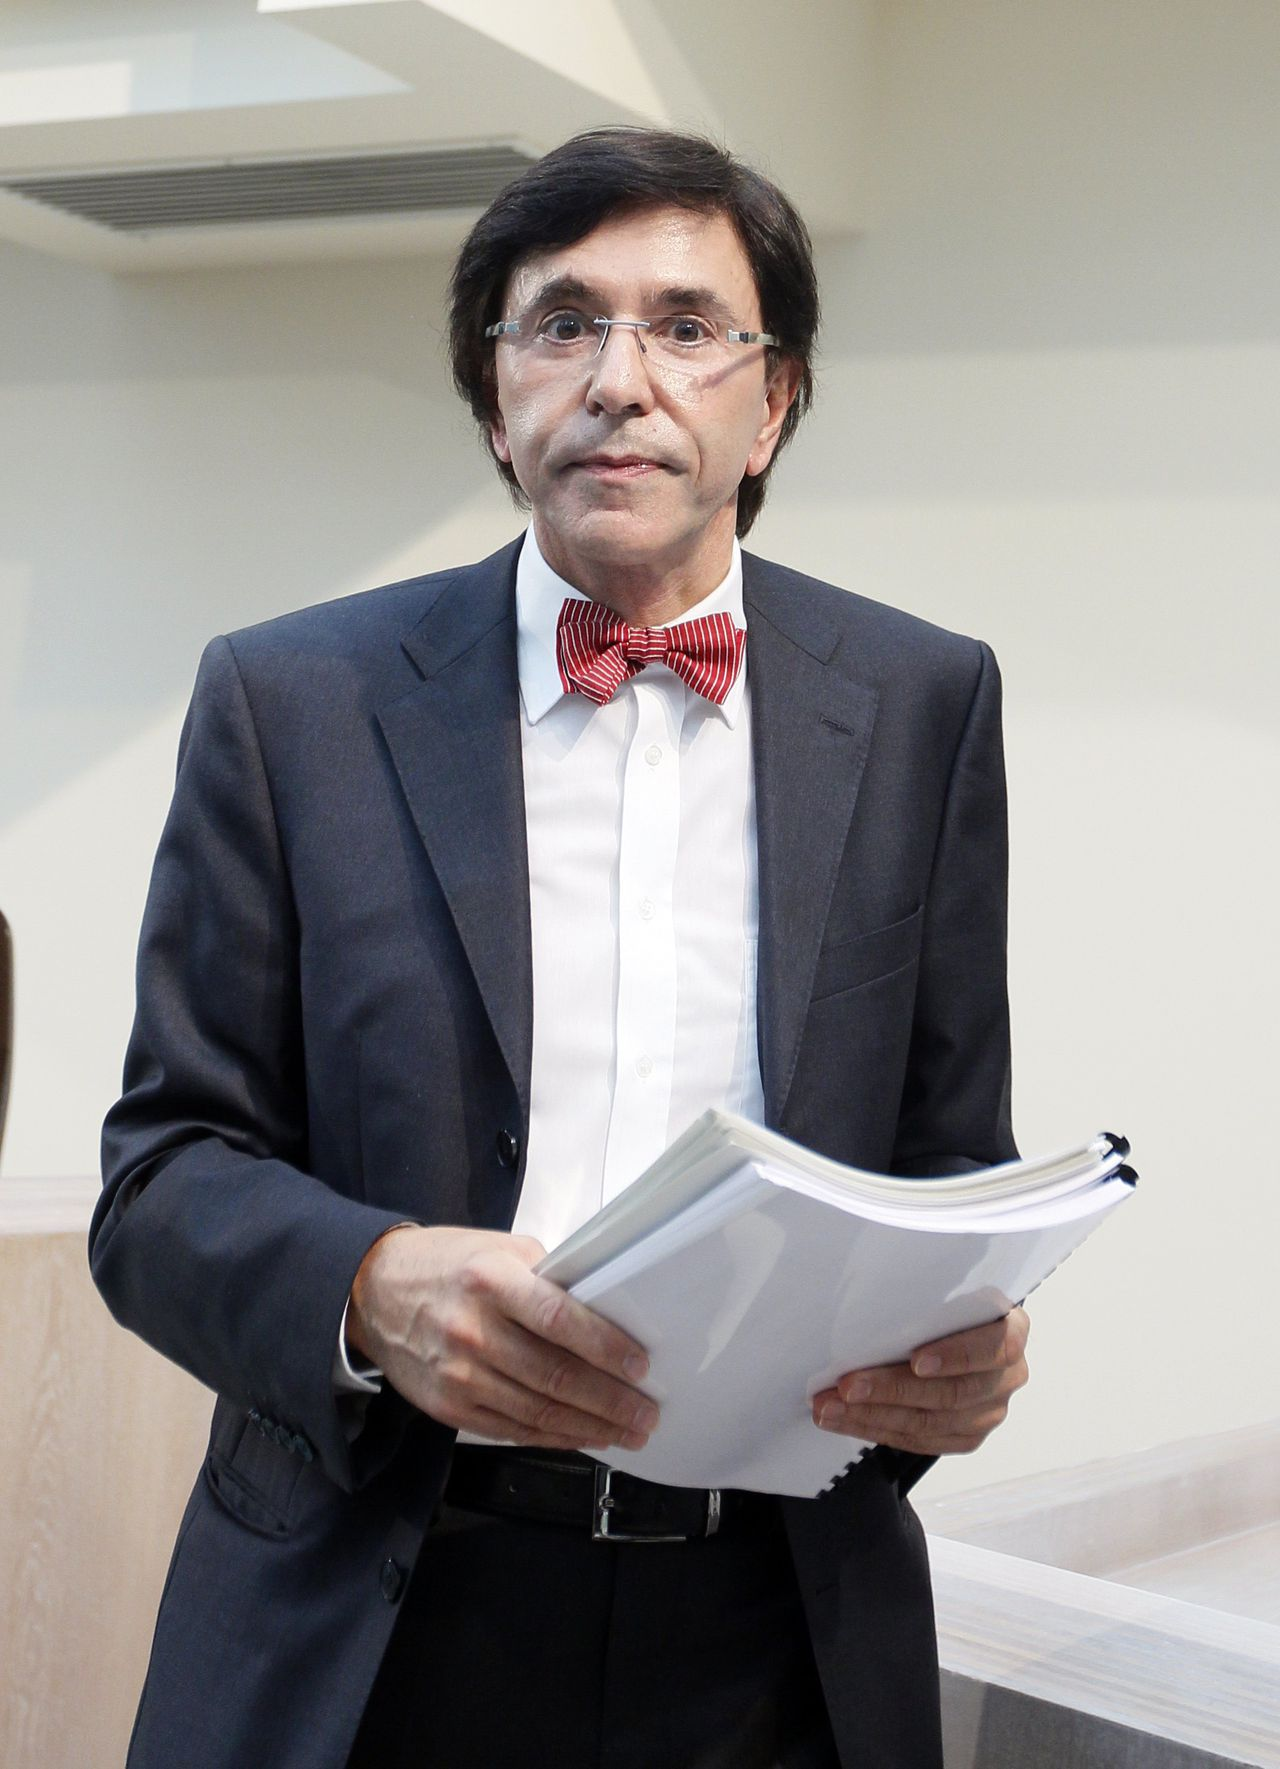 Belgian French-speaking Socialist Party (PS) President Elio Di Rupo leaves a news conference after delivering his final report to Belgian King Albert II in Brussels July 4, 2011. King Albert asked Di Rupo to try to form a government following elections on June 13, 2010, the latest attempt to break 12 months of political stalemate in the linguistically divided country. REUTERS/Yves Herman (BELGIUM - Tags: POLITICS)